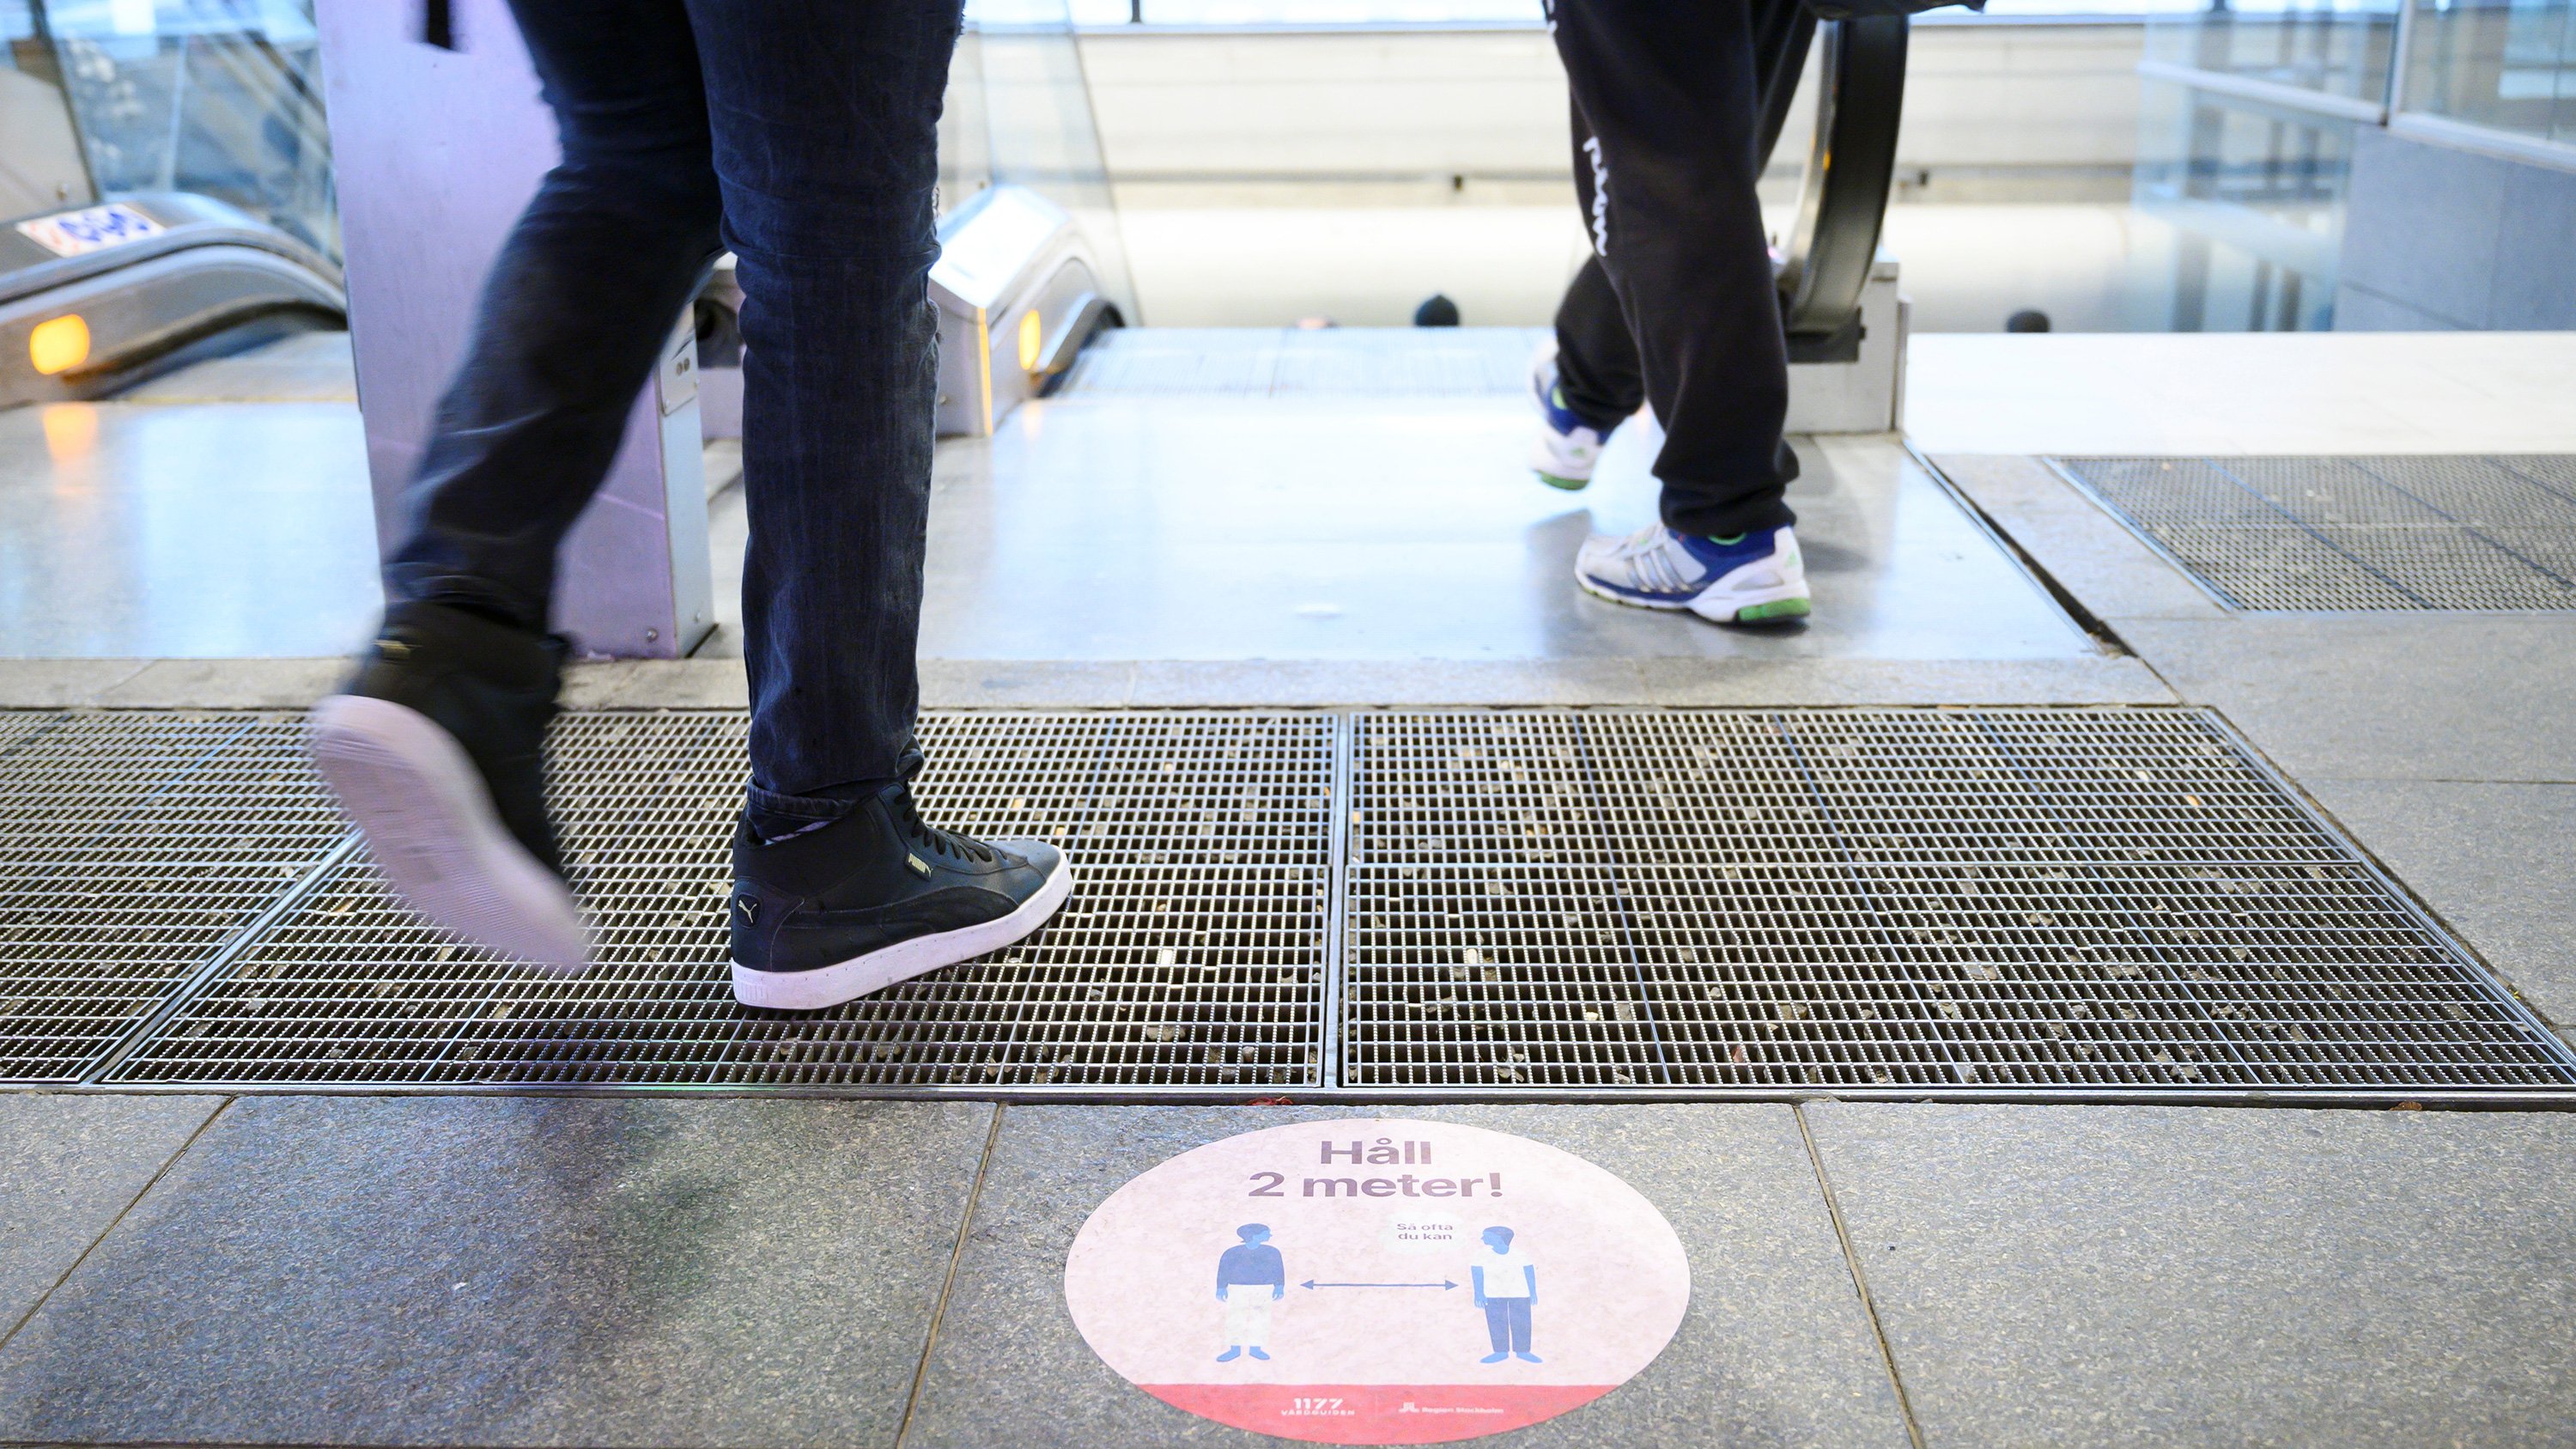 The photo shows feet walking onto an escalator above a sign warning of social distancing.